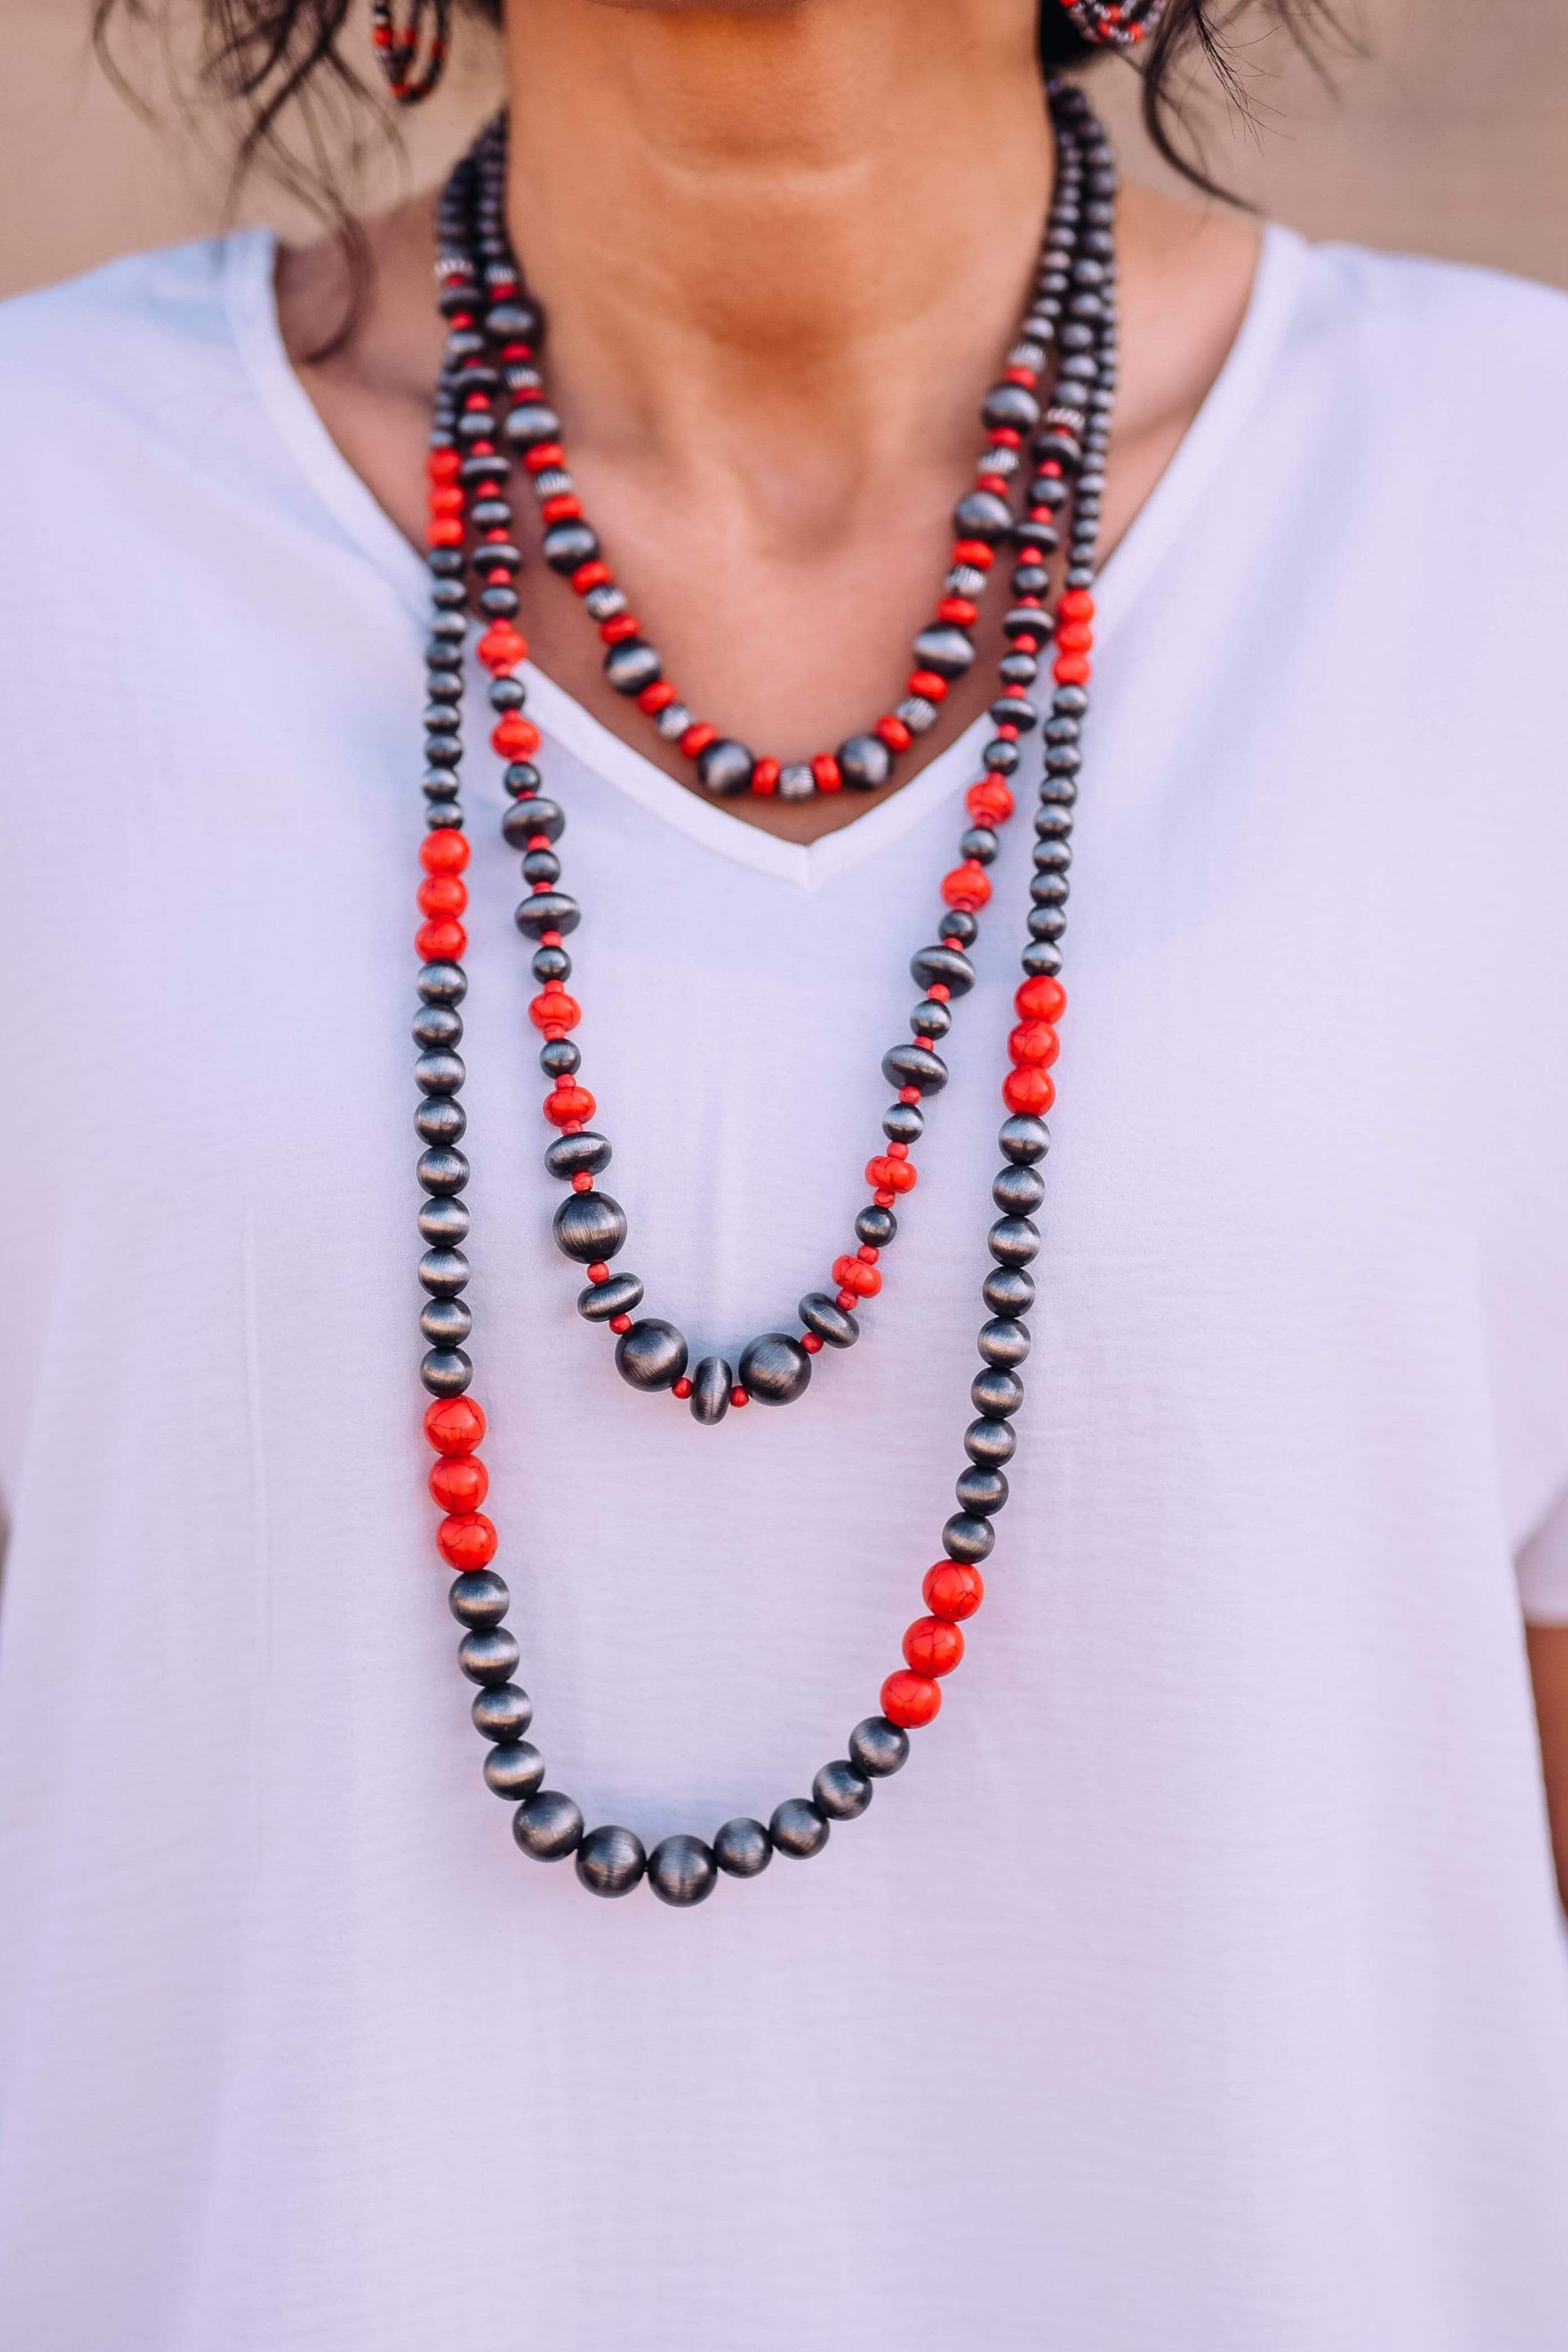 Accessorize In Style Fashion Necklaces Fashion 3 Strand Graduated Navajo Pearls - Red